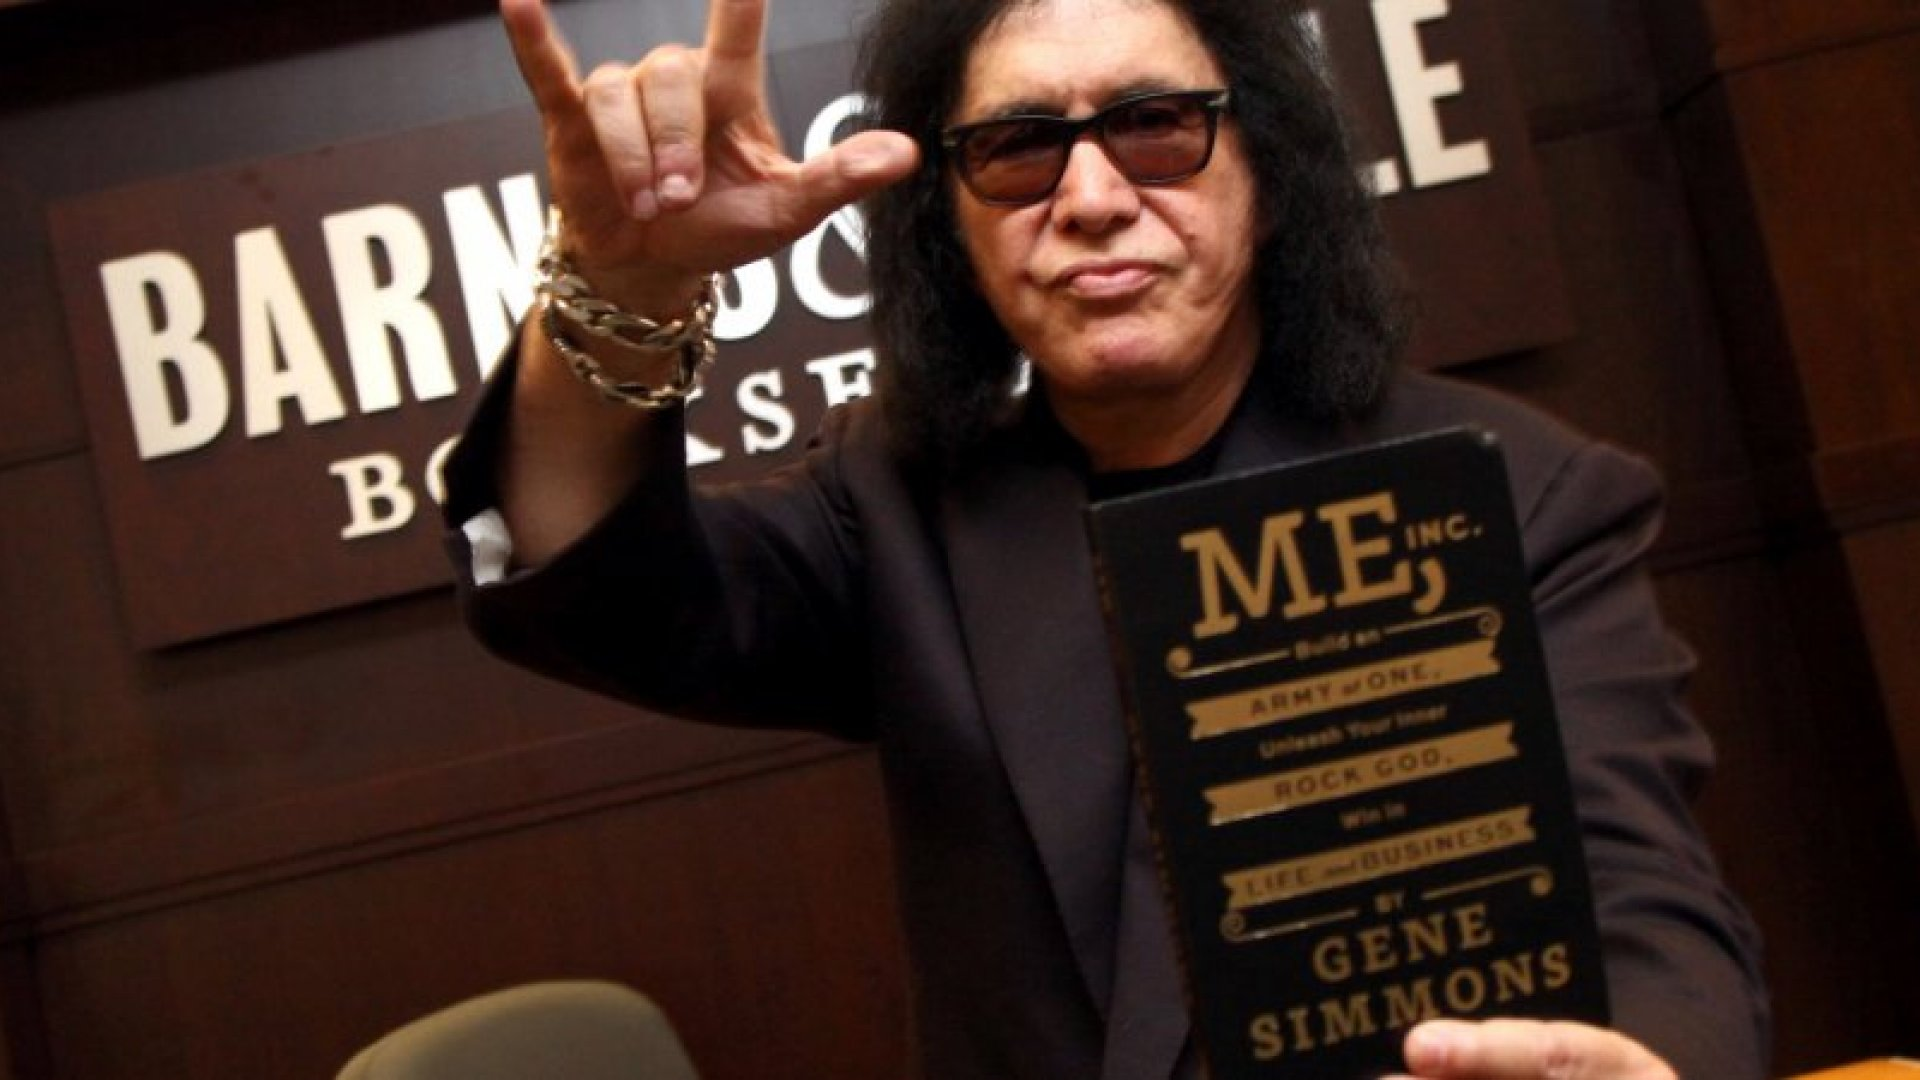 Musician Gene Simmons signs copies of his new book 'Me, Inc.' at Barnes & Noble bookstore at The Grove on October 19, 2014 in Los Angeles, California.  (Photo by Tommaso Boddi/WireImage)